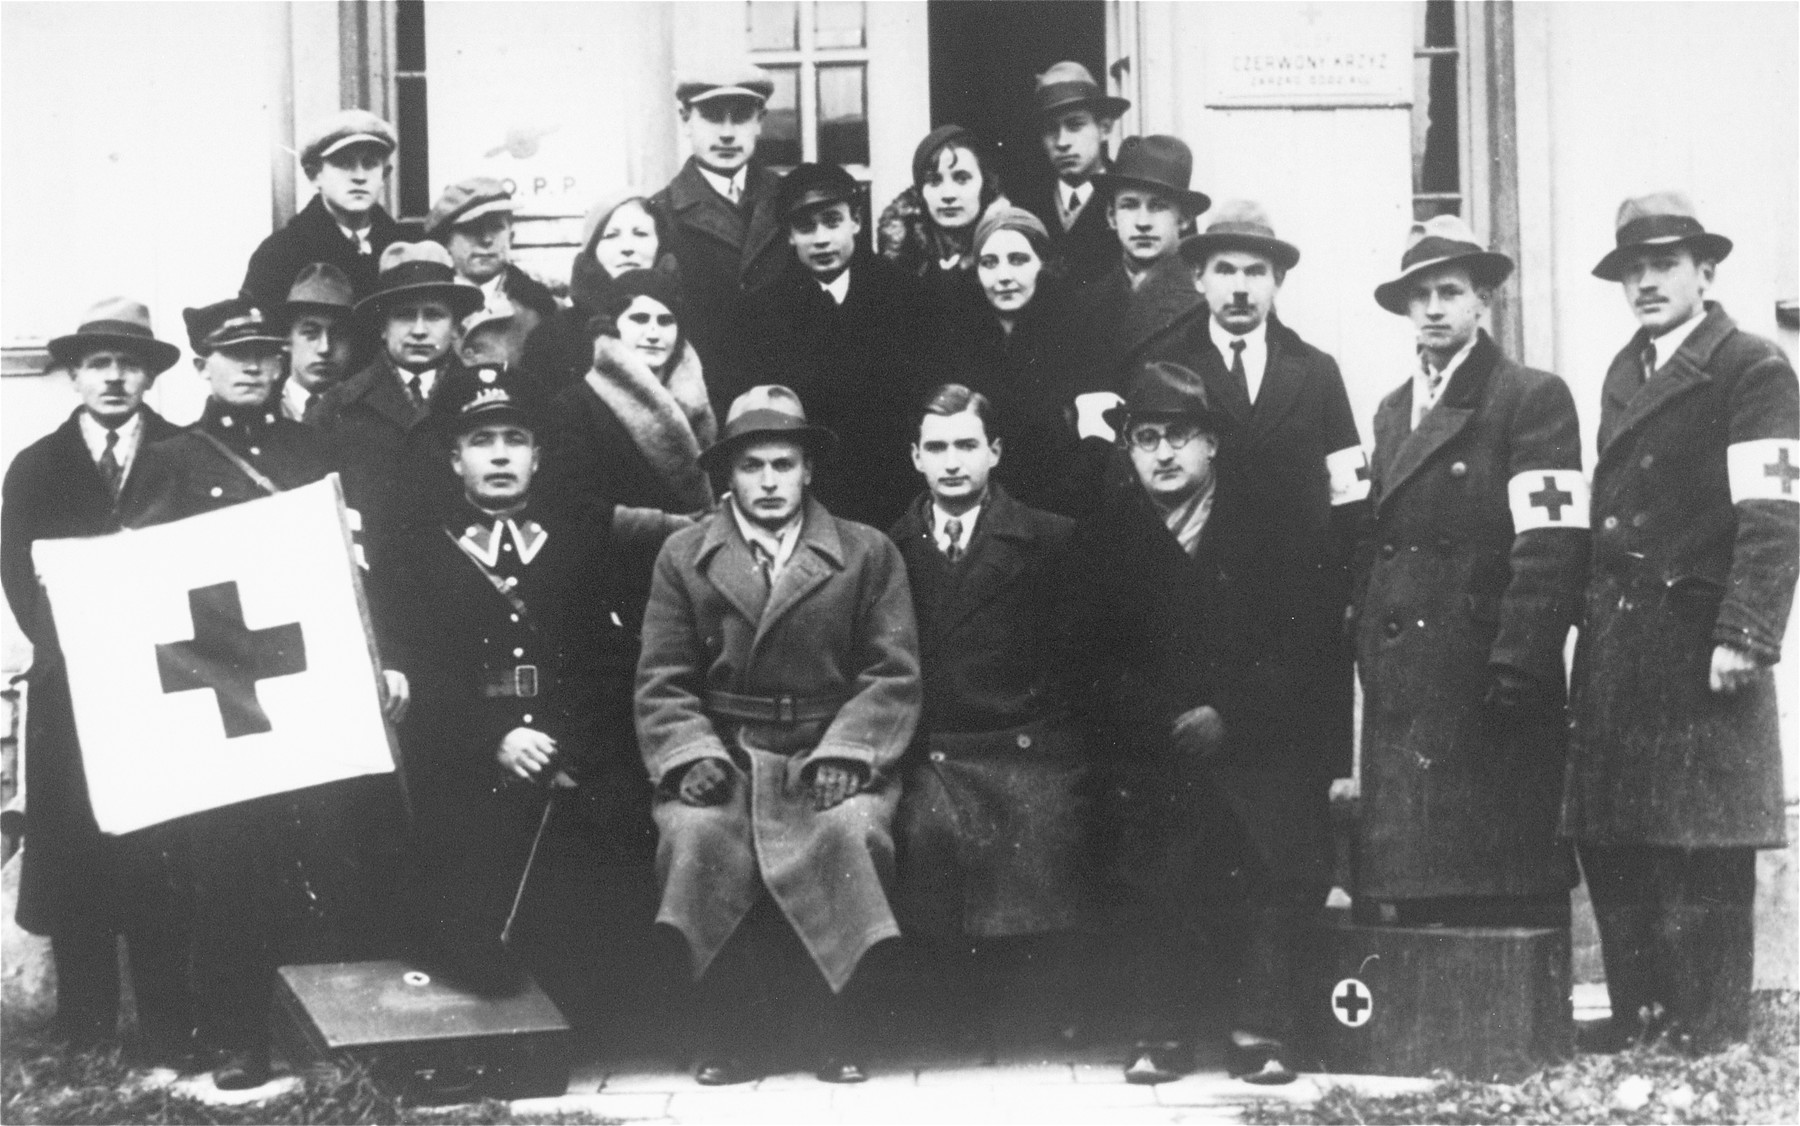 Group portrait of members of the Polish Red Cross, among them one Jew, Dr. Marek Marienstrauss, sitting on the far right.